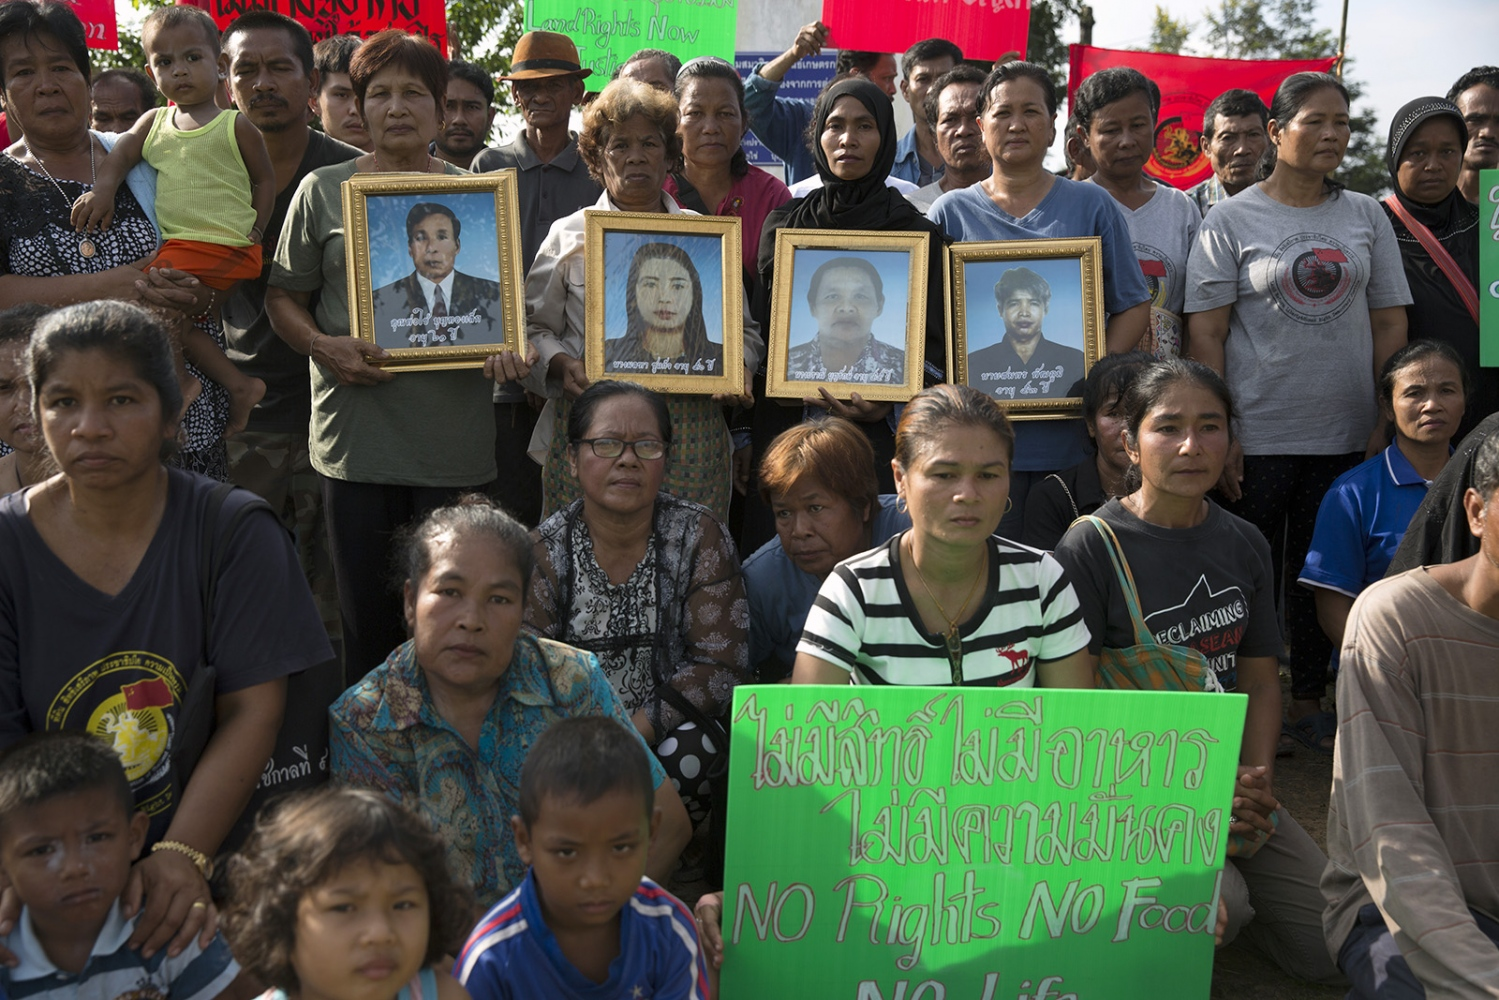 Members of Klong Sai Pattana community, as well as members of other villages in a similar situation, gather for a group photograph on their their annual memorial day. Events such as this help the communities cope with their situations by eliminating the feeling that they are not alone in the struggle. They hold pictures of the 4 people killed during their prolonged struggle against a palm oil company. The framed photo seen in the photograph shows the first victim called Somporn Pattaphum who was shot dead in 11 January 2010 a few hundred meters away from where they now sit. December 2016.